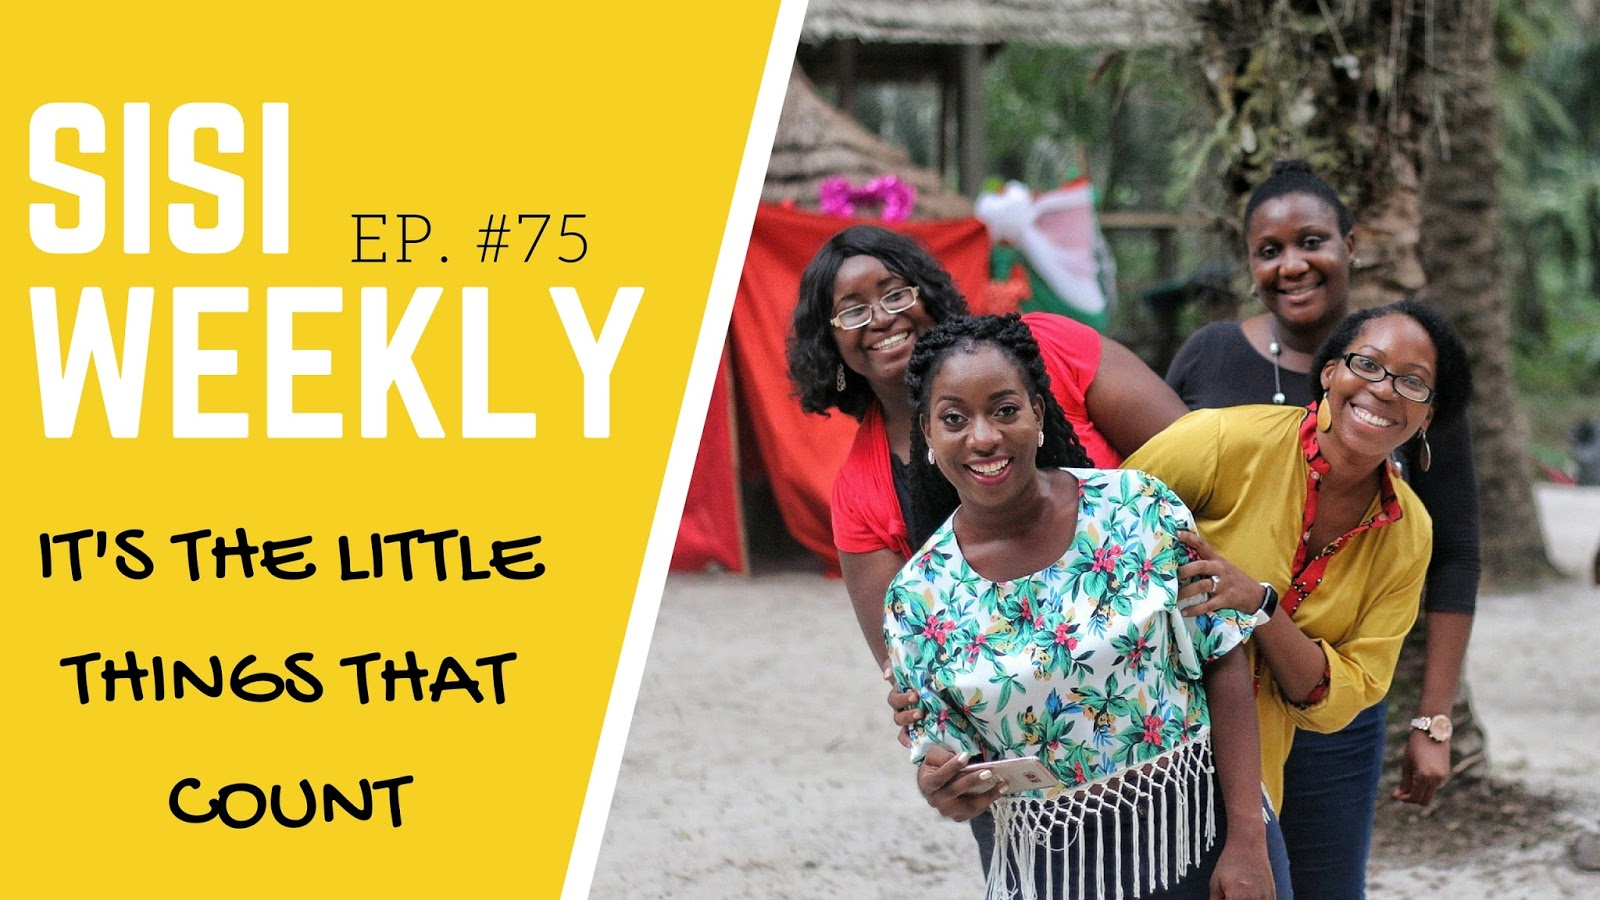 Following up my goal for the year, I decided that meeting up with friends  would be fun, we explored Lufasi Park in Sangotedo, Lagos. It was fun!